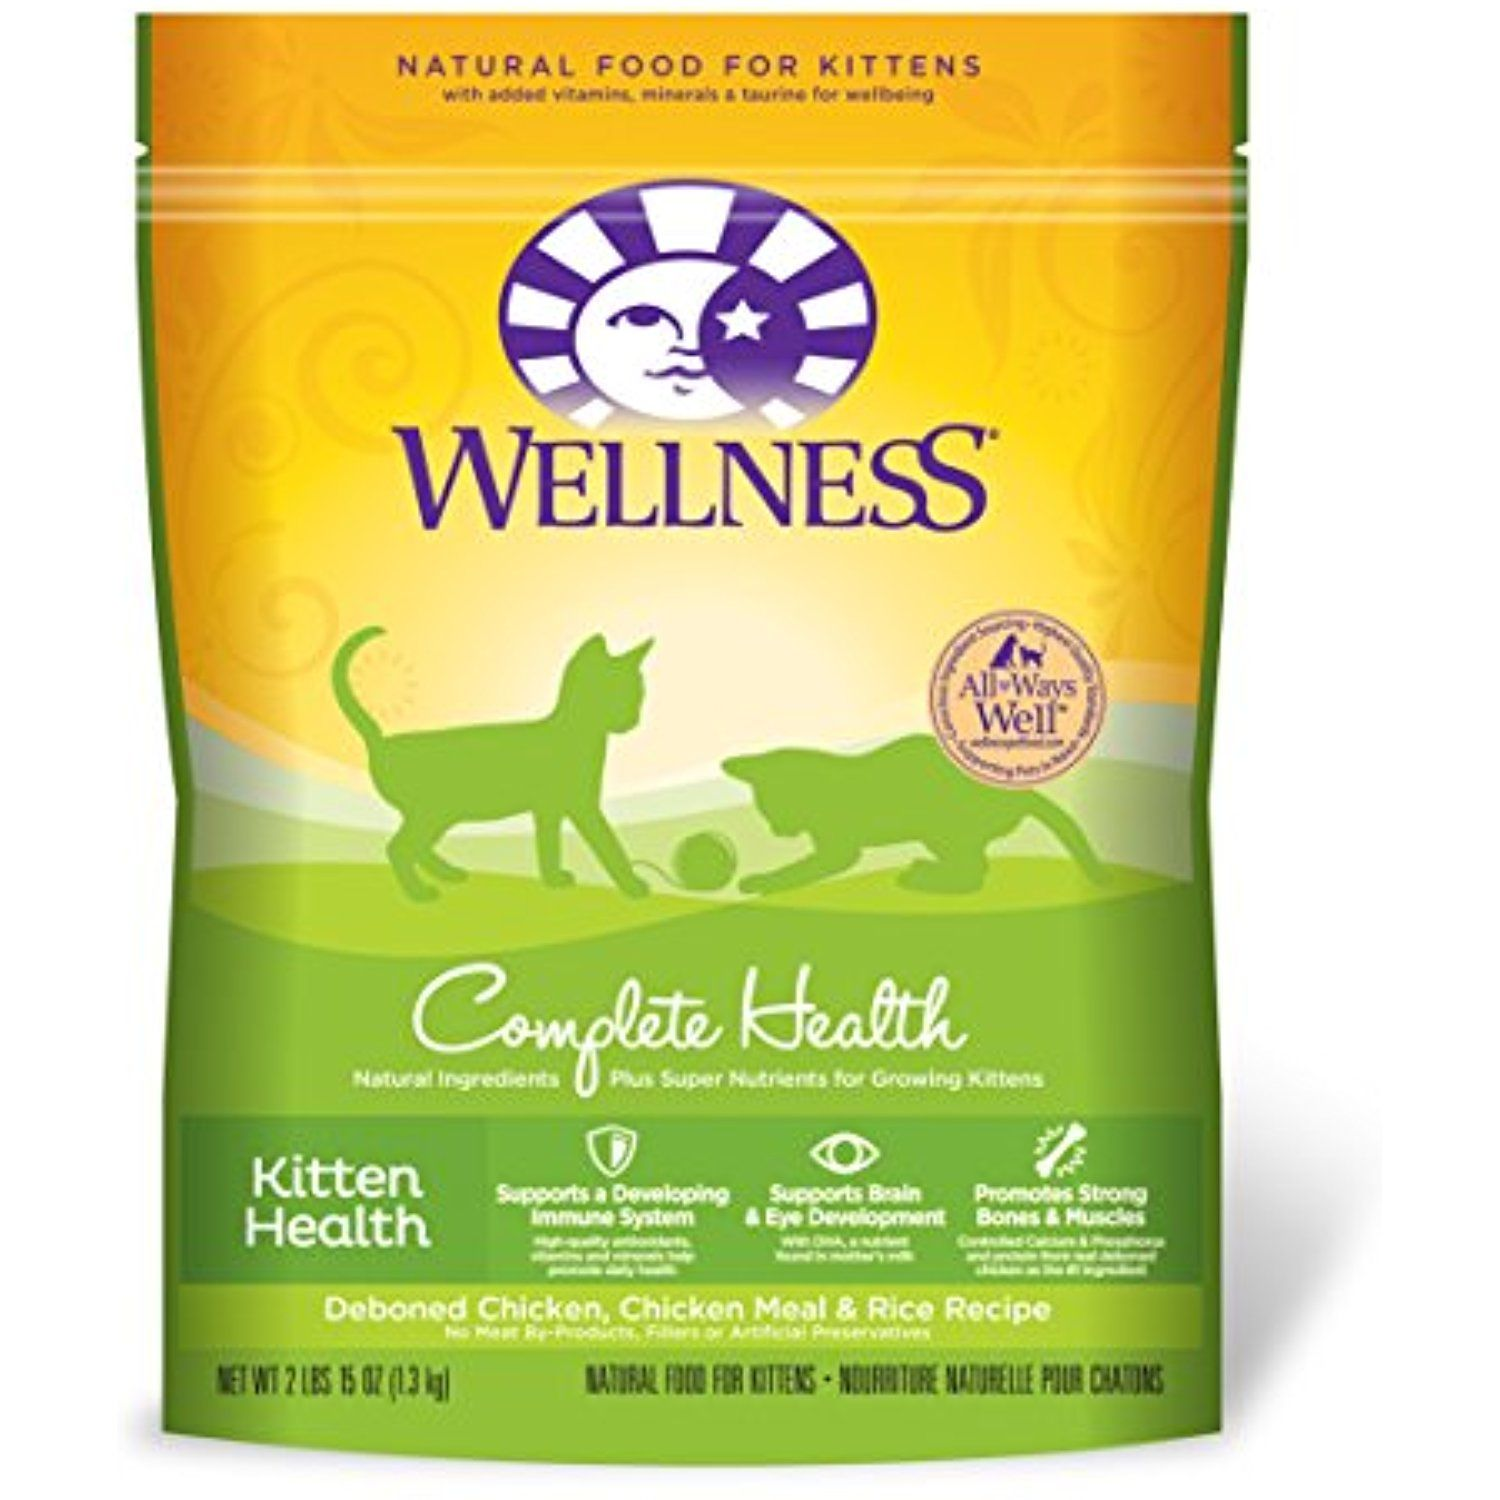 Wellness Complete Health Natural Dry Kitten Food Chicken Cats Kitten Food Kitten Health Dry Cat Food